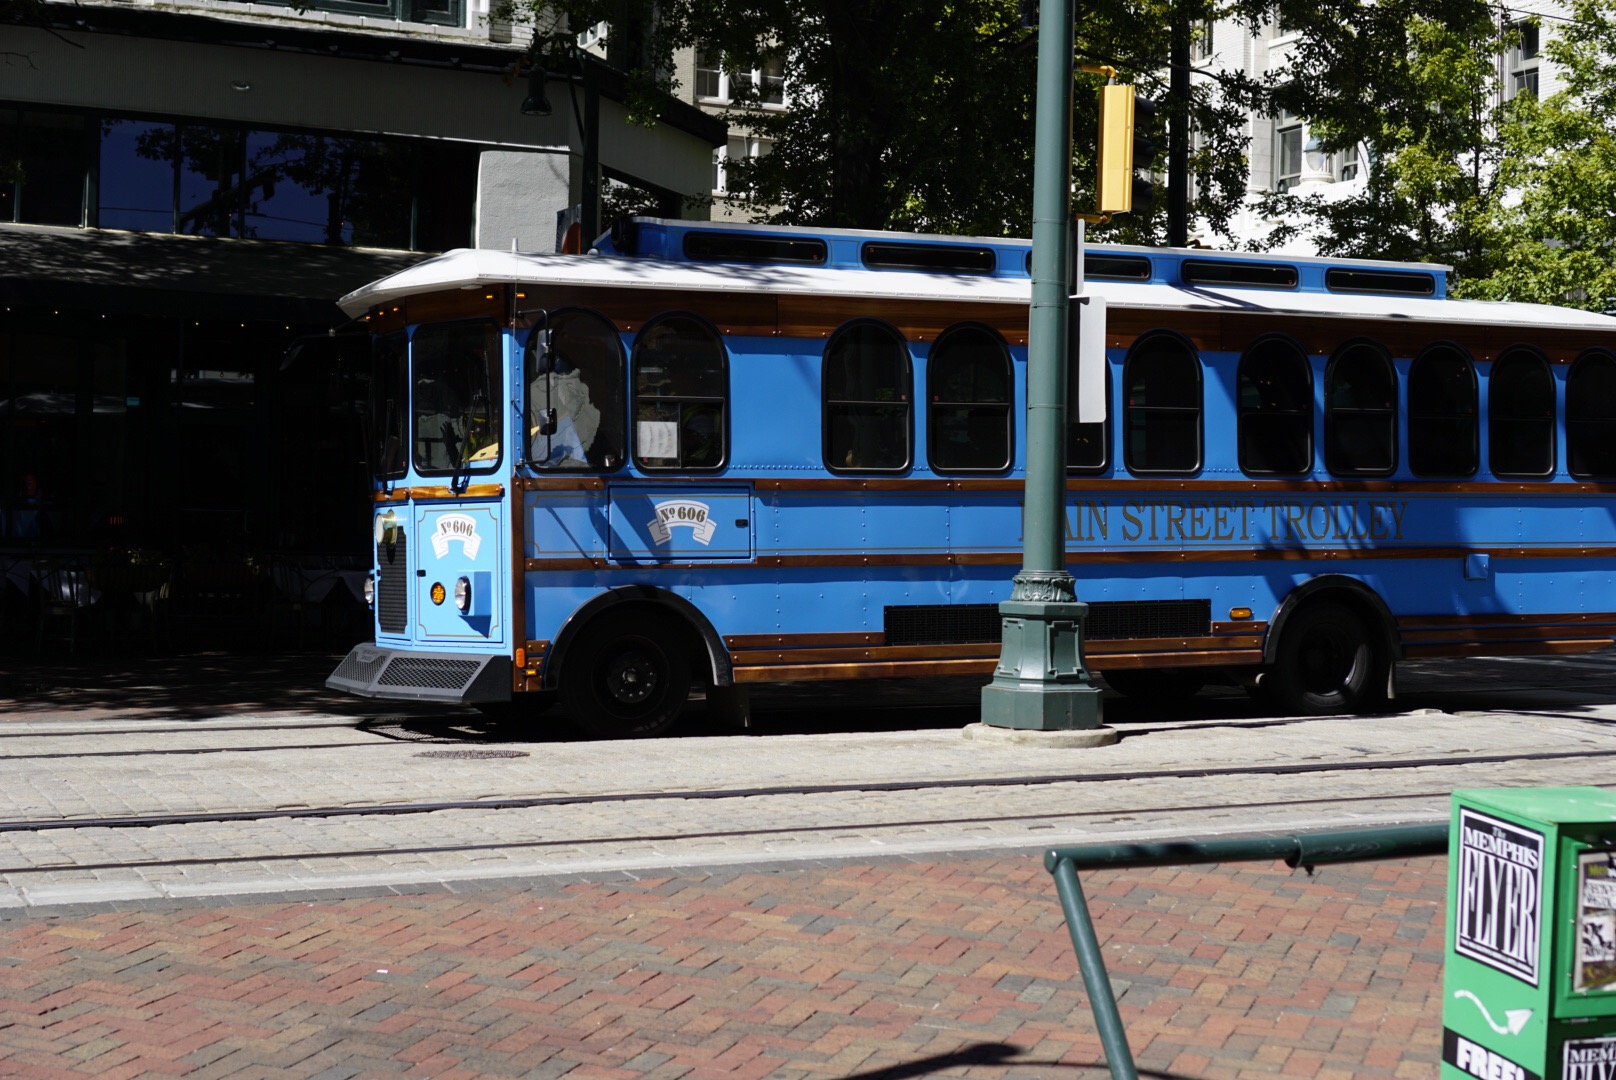 I miss the old trolleys